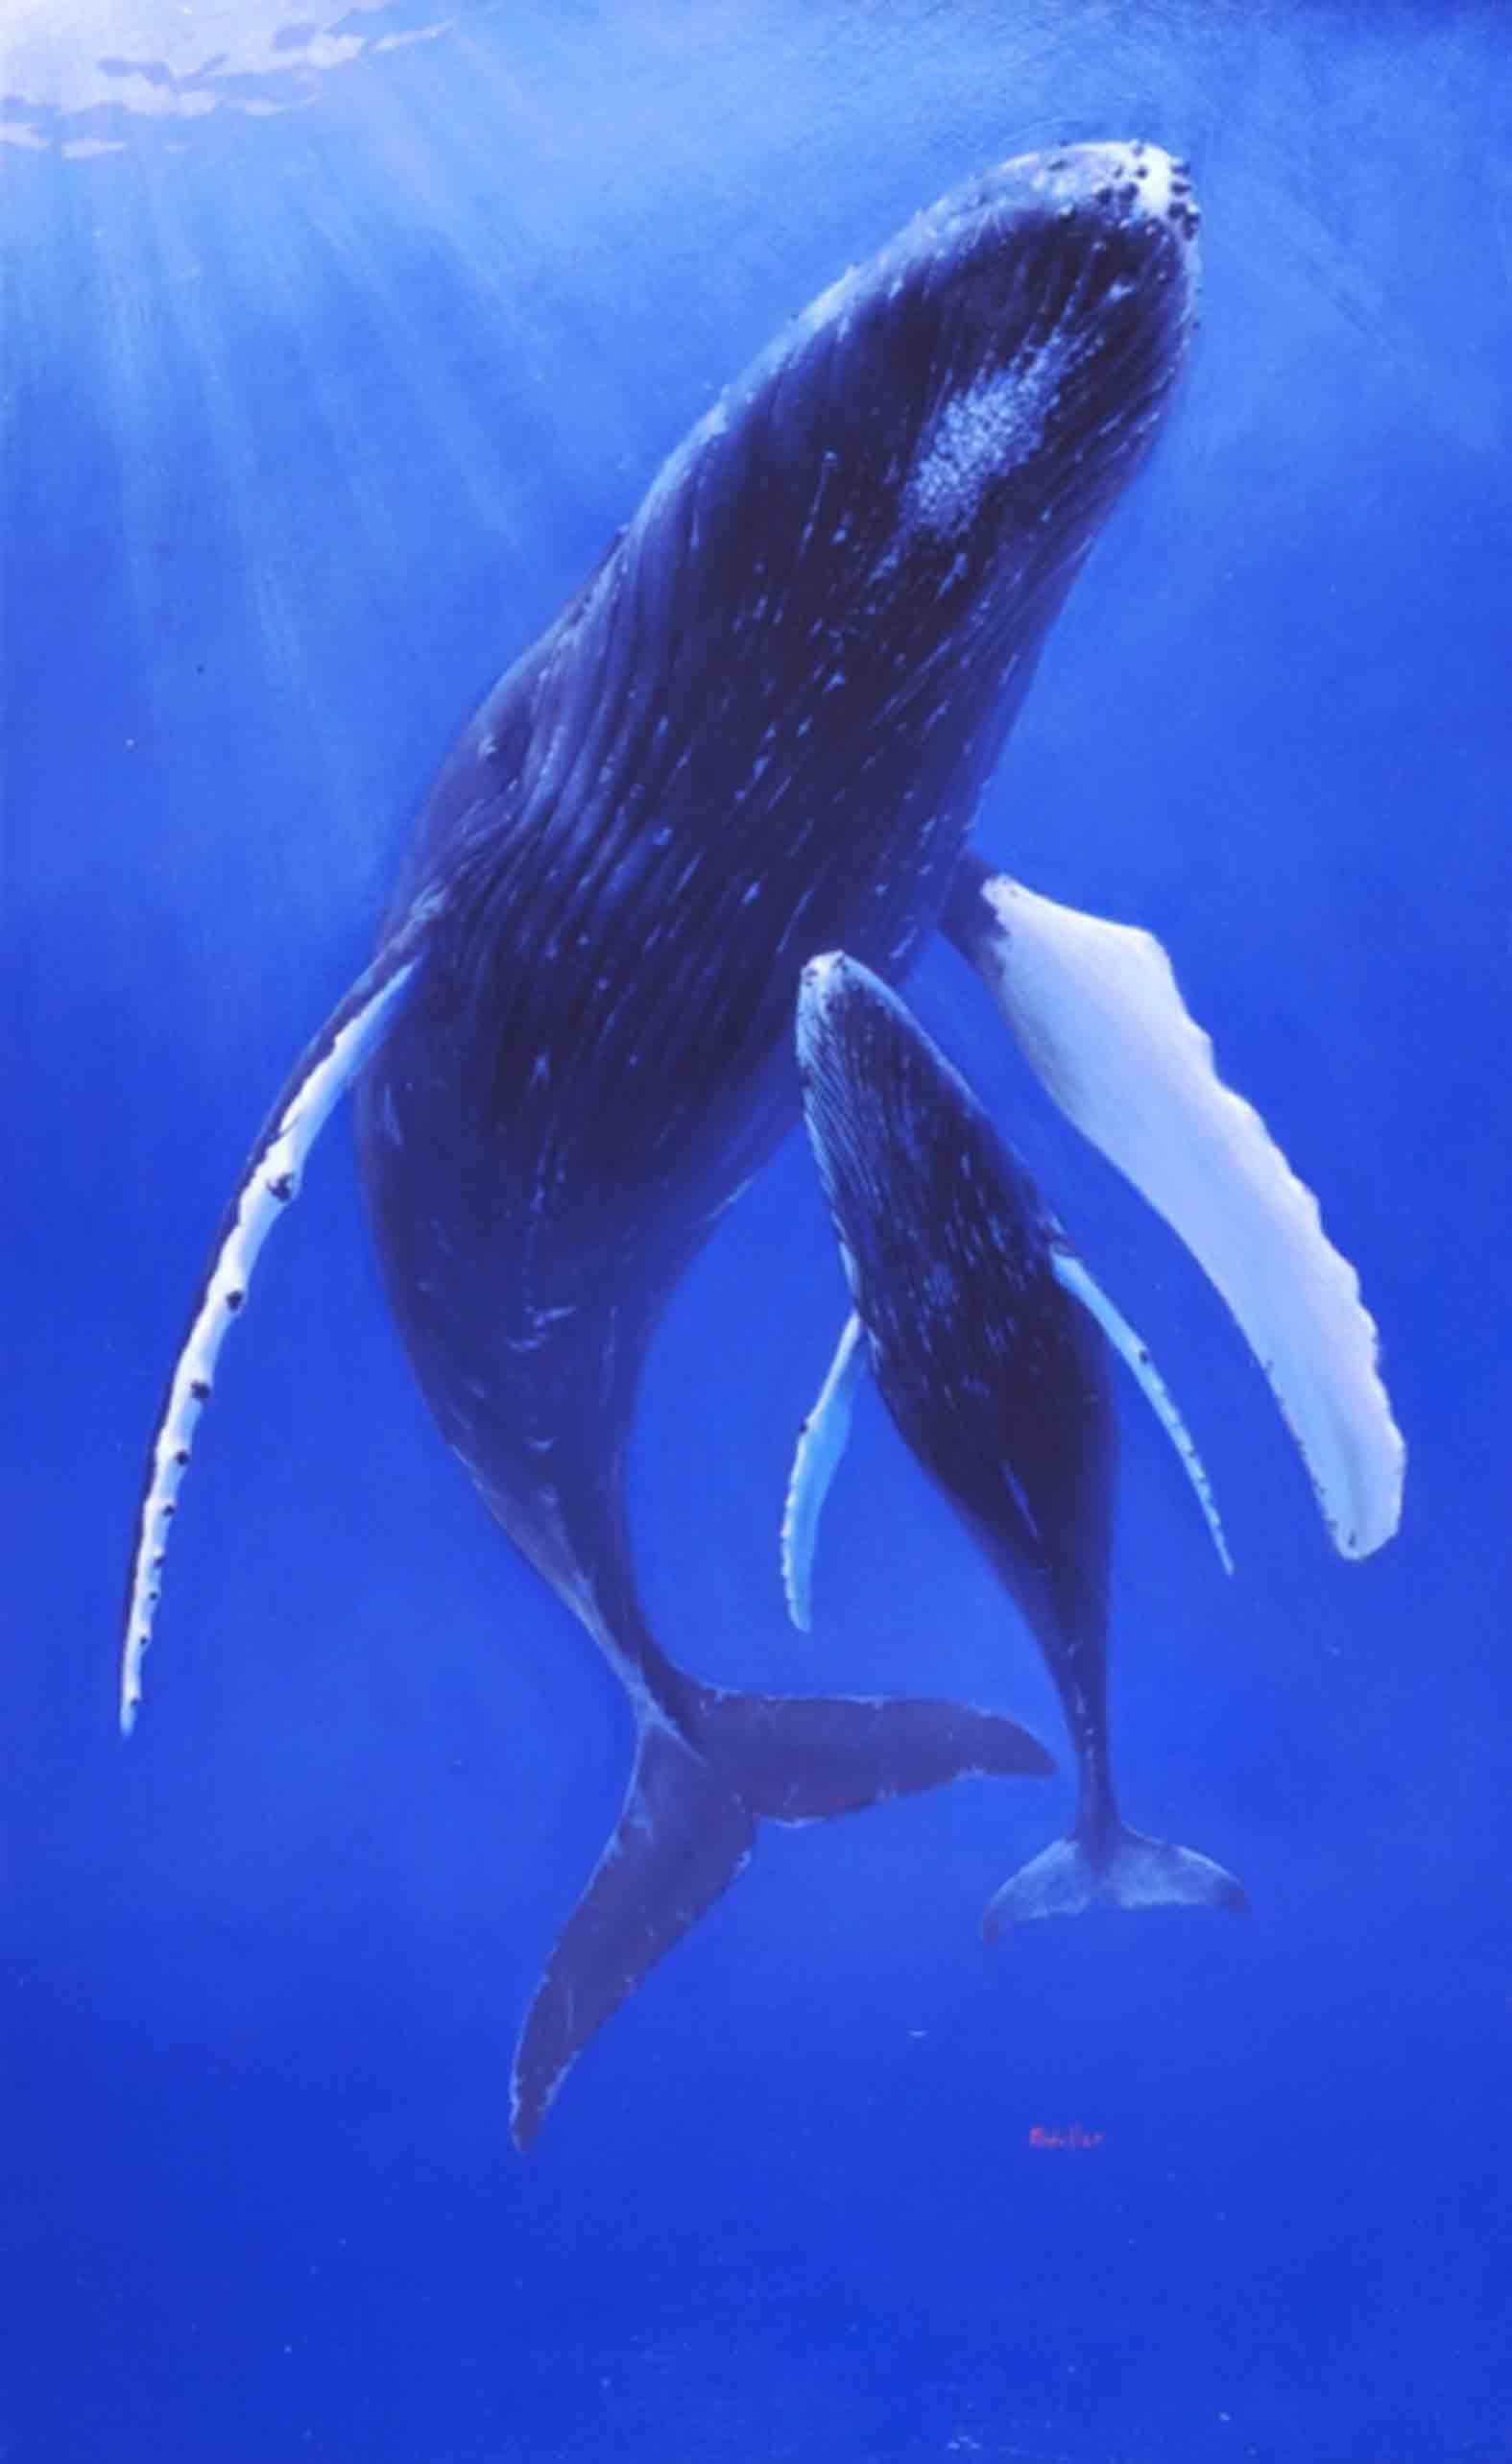 Mark Waller's painting, Blue Embrace, a whale and calf underwater.